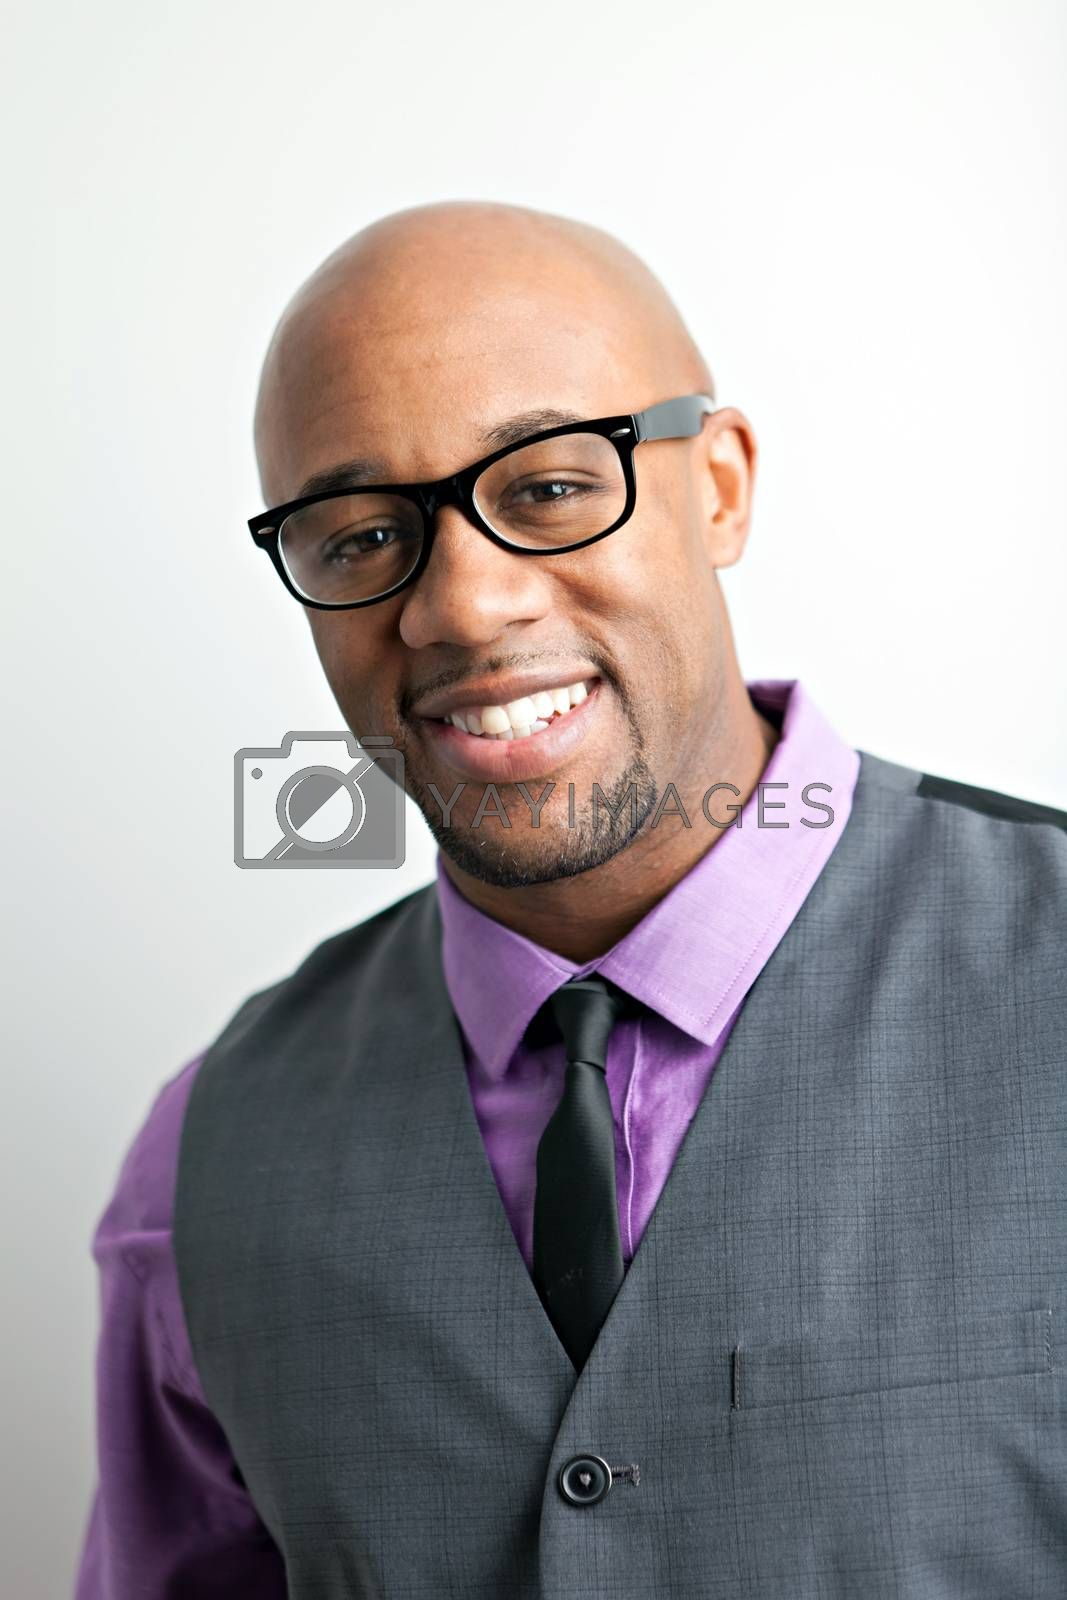 Stylish modern business man wearing black framed glasses.